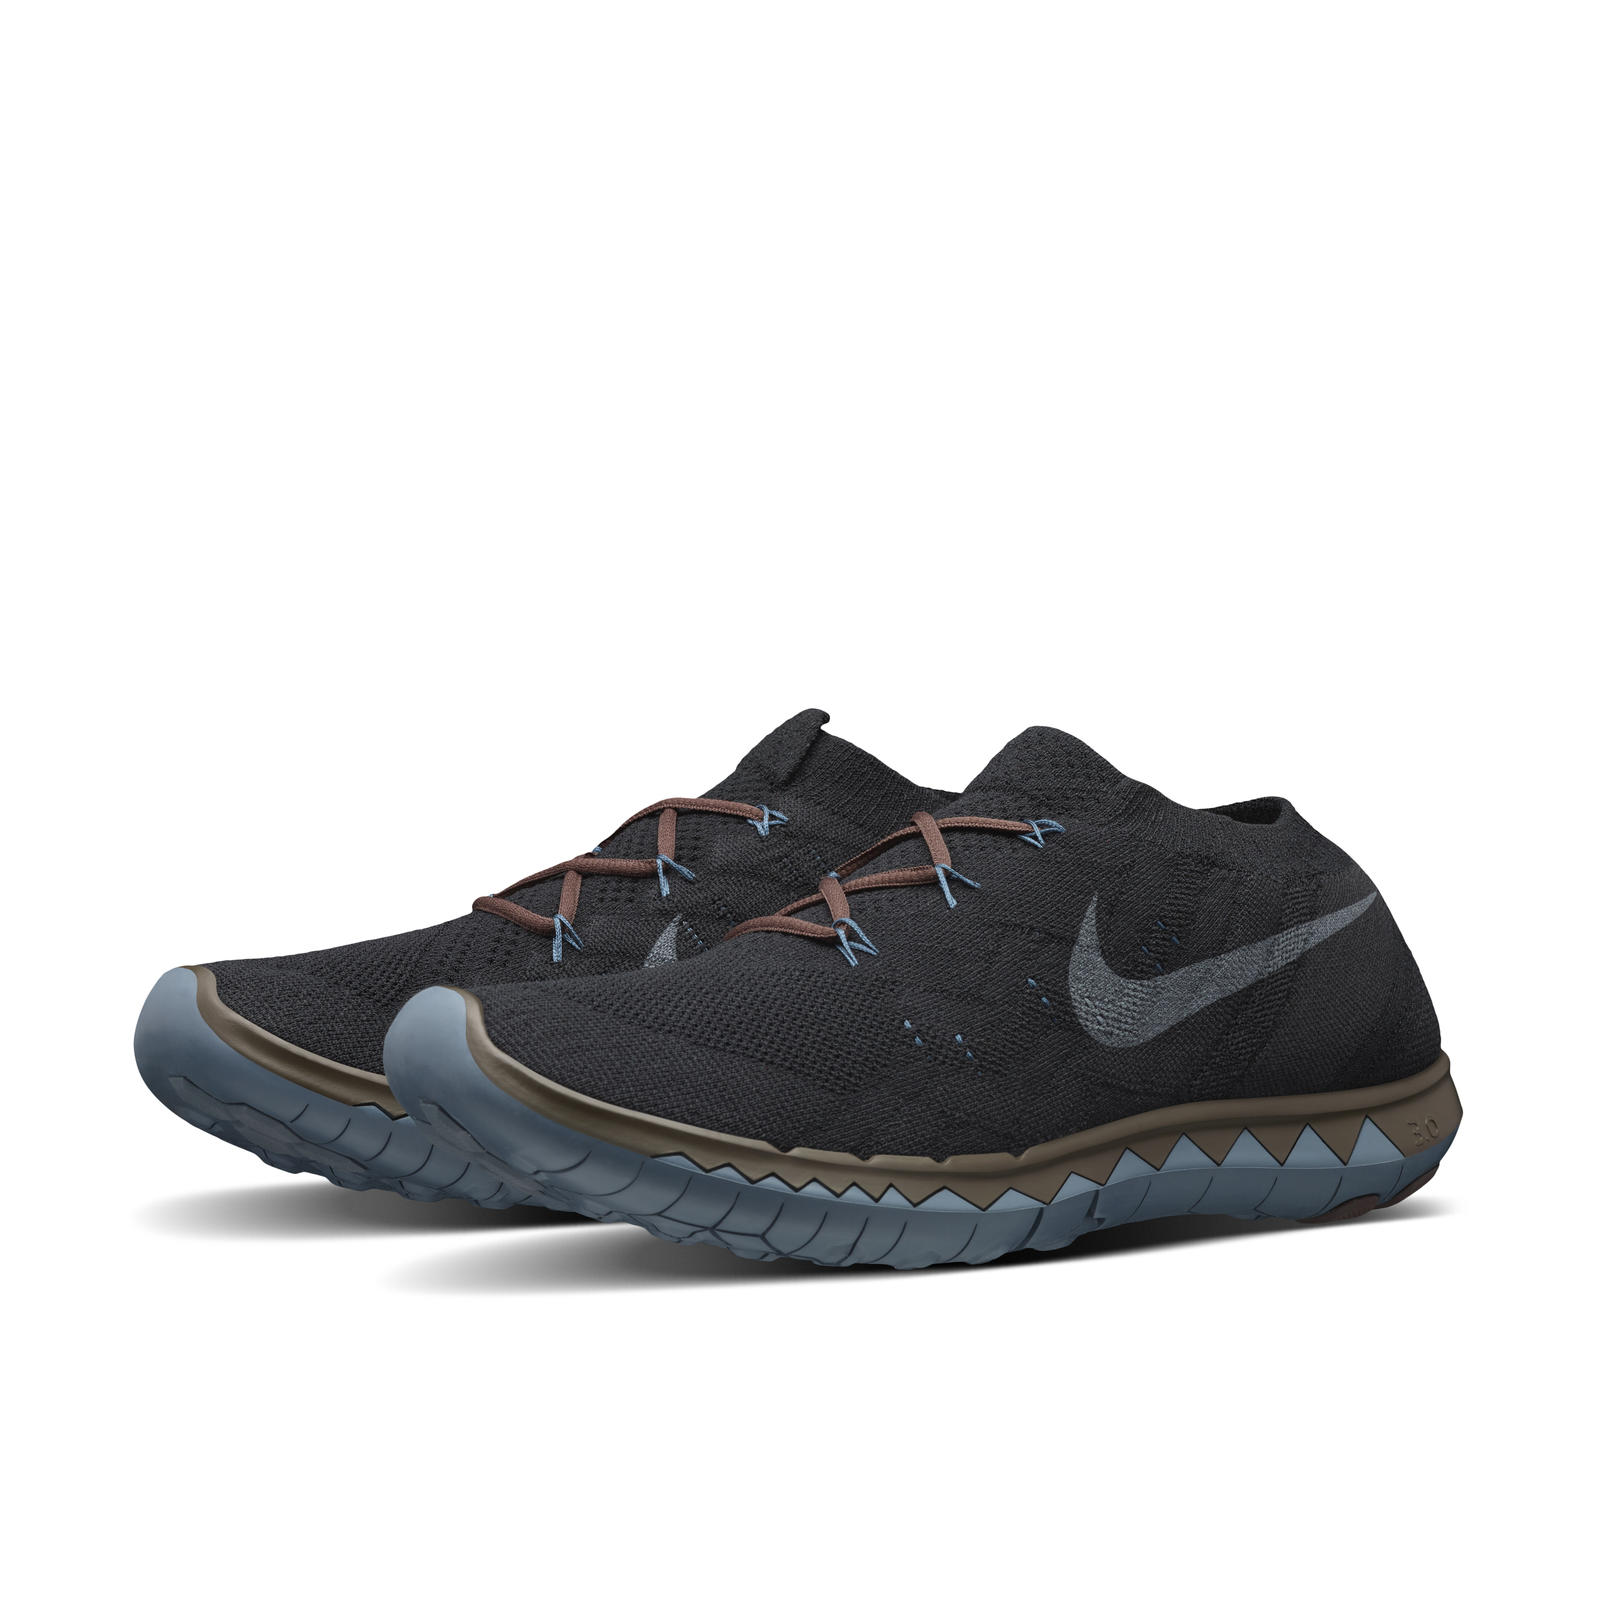 bc1c7191889f Redefining Running Silhouettes  The Holiday 2015 NikeLab x ...